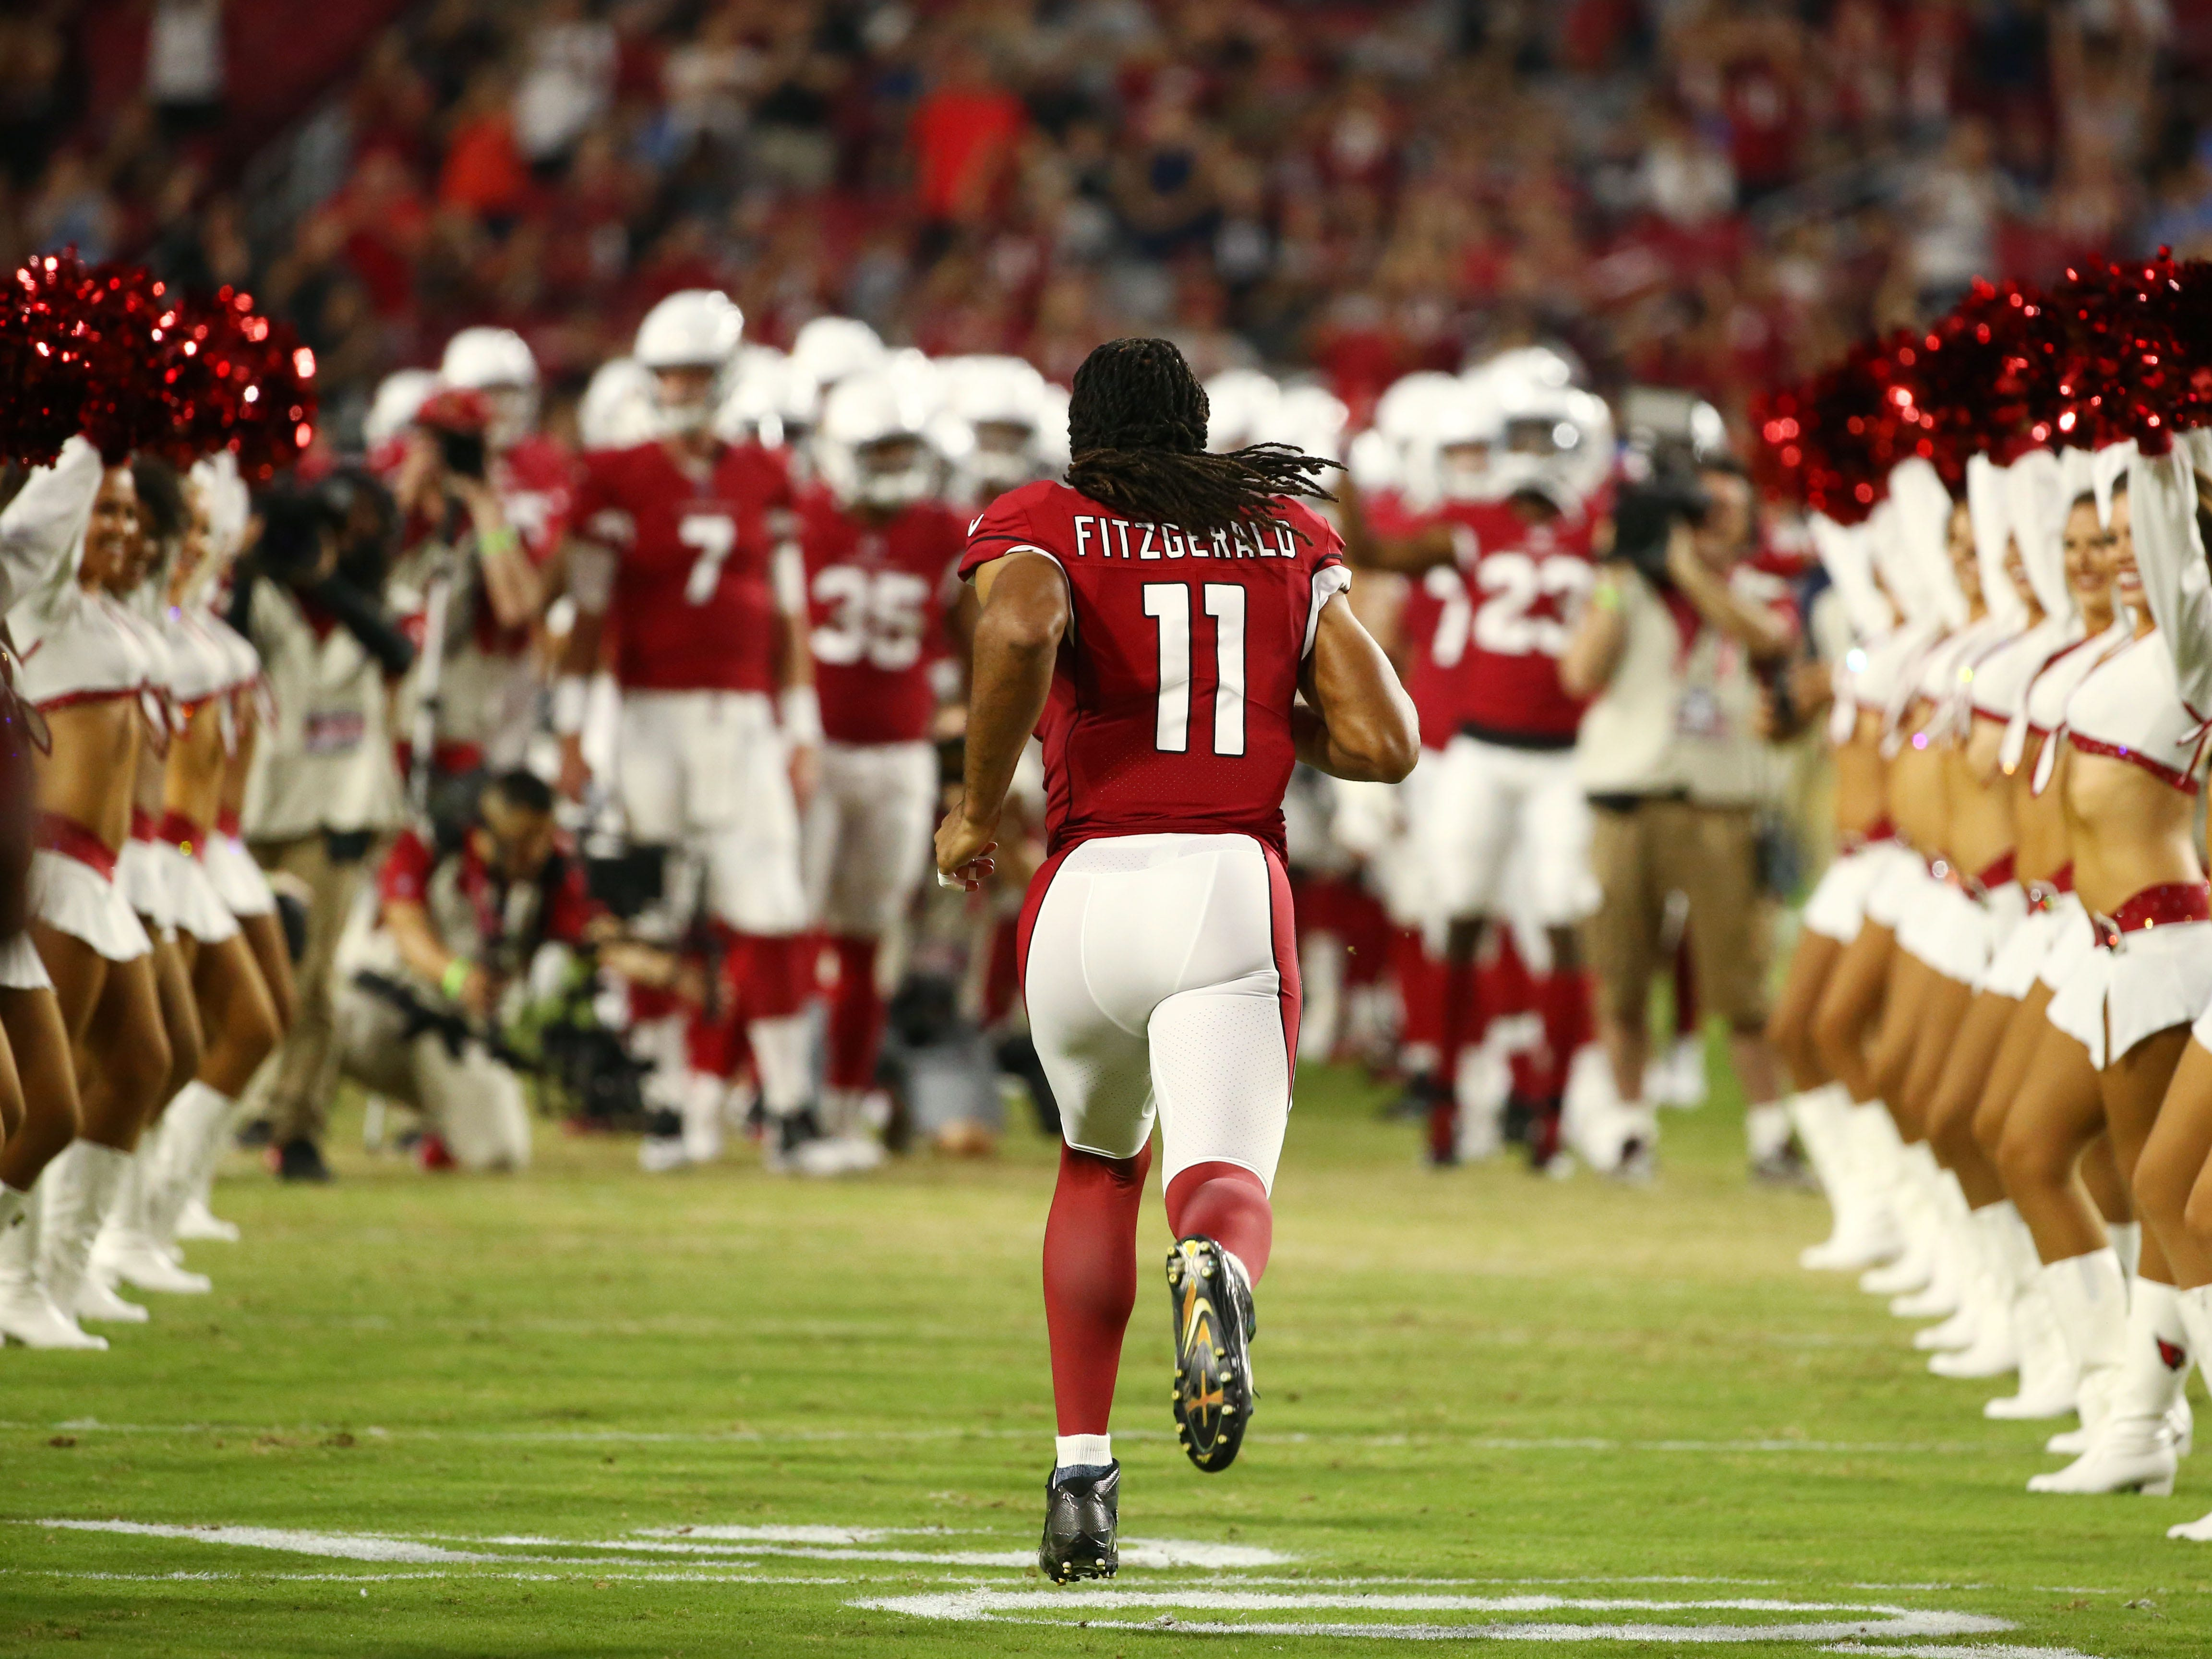 Arizona Cardinals Larry Fitzgerald takes the field against the L.A. Chargers in the first half during a preseason NFL football game on Aug. 11, 2018 at University of Phoenix Stadium in Glendale, Ariz.